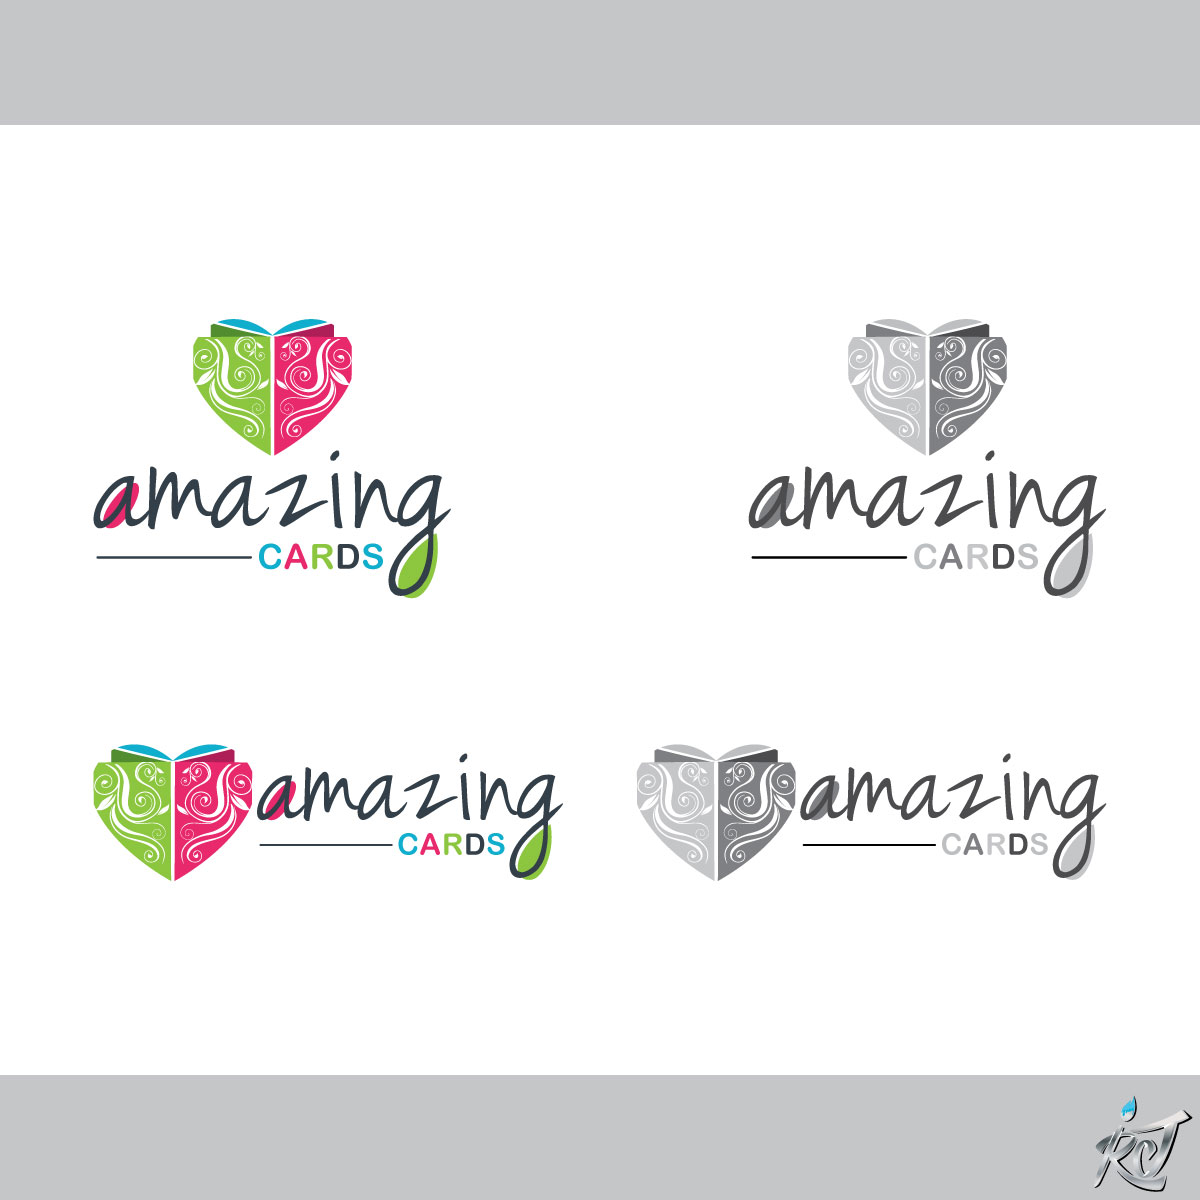 Modern Upmarket Store Logo Design For Amazing Cards By Rr